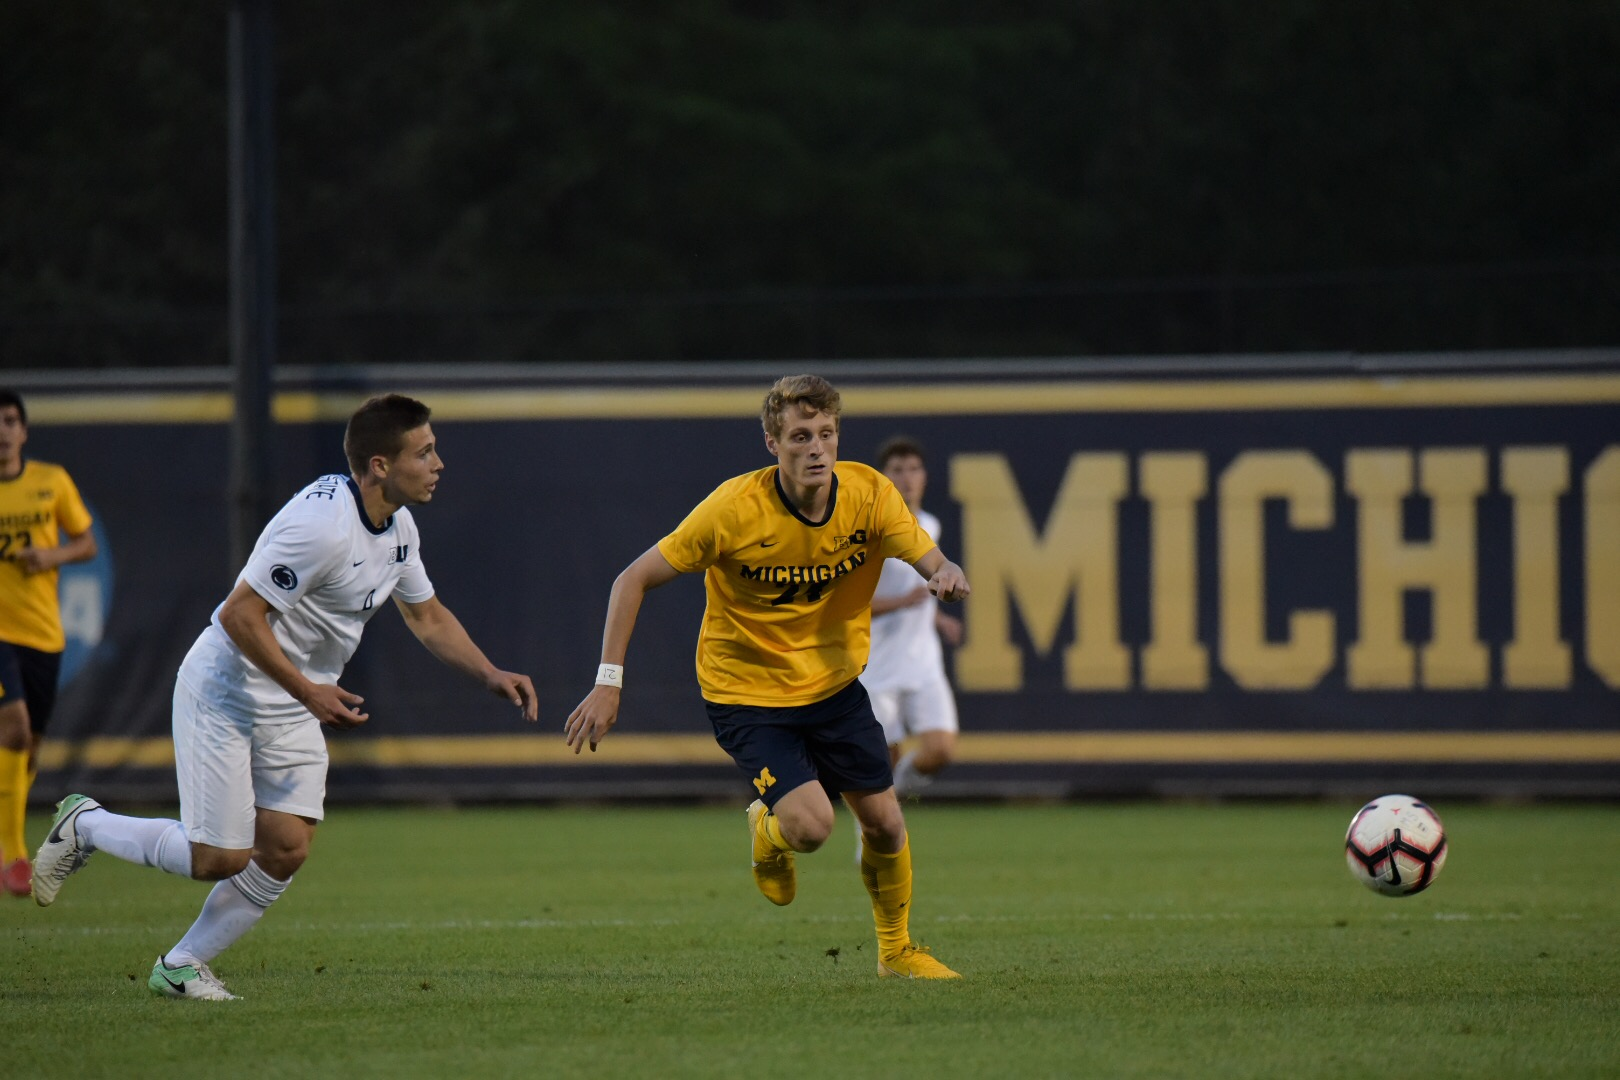 Lucas Rosendall chases down the ball in Friday night's 1-1 draw to Penn State.